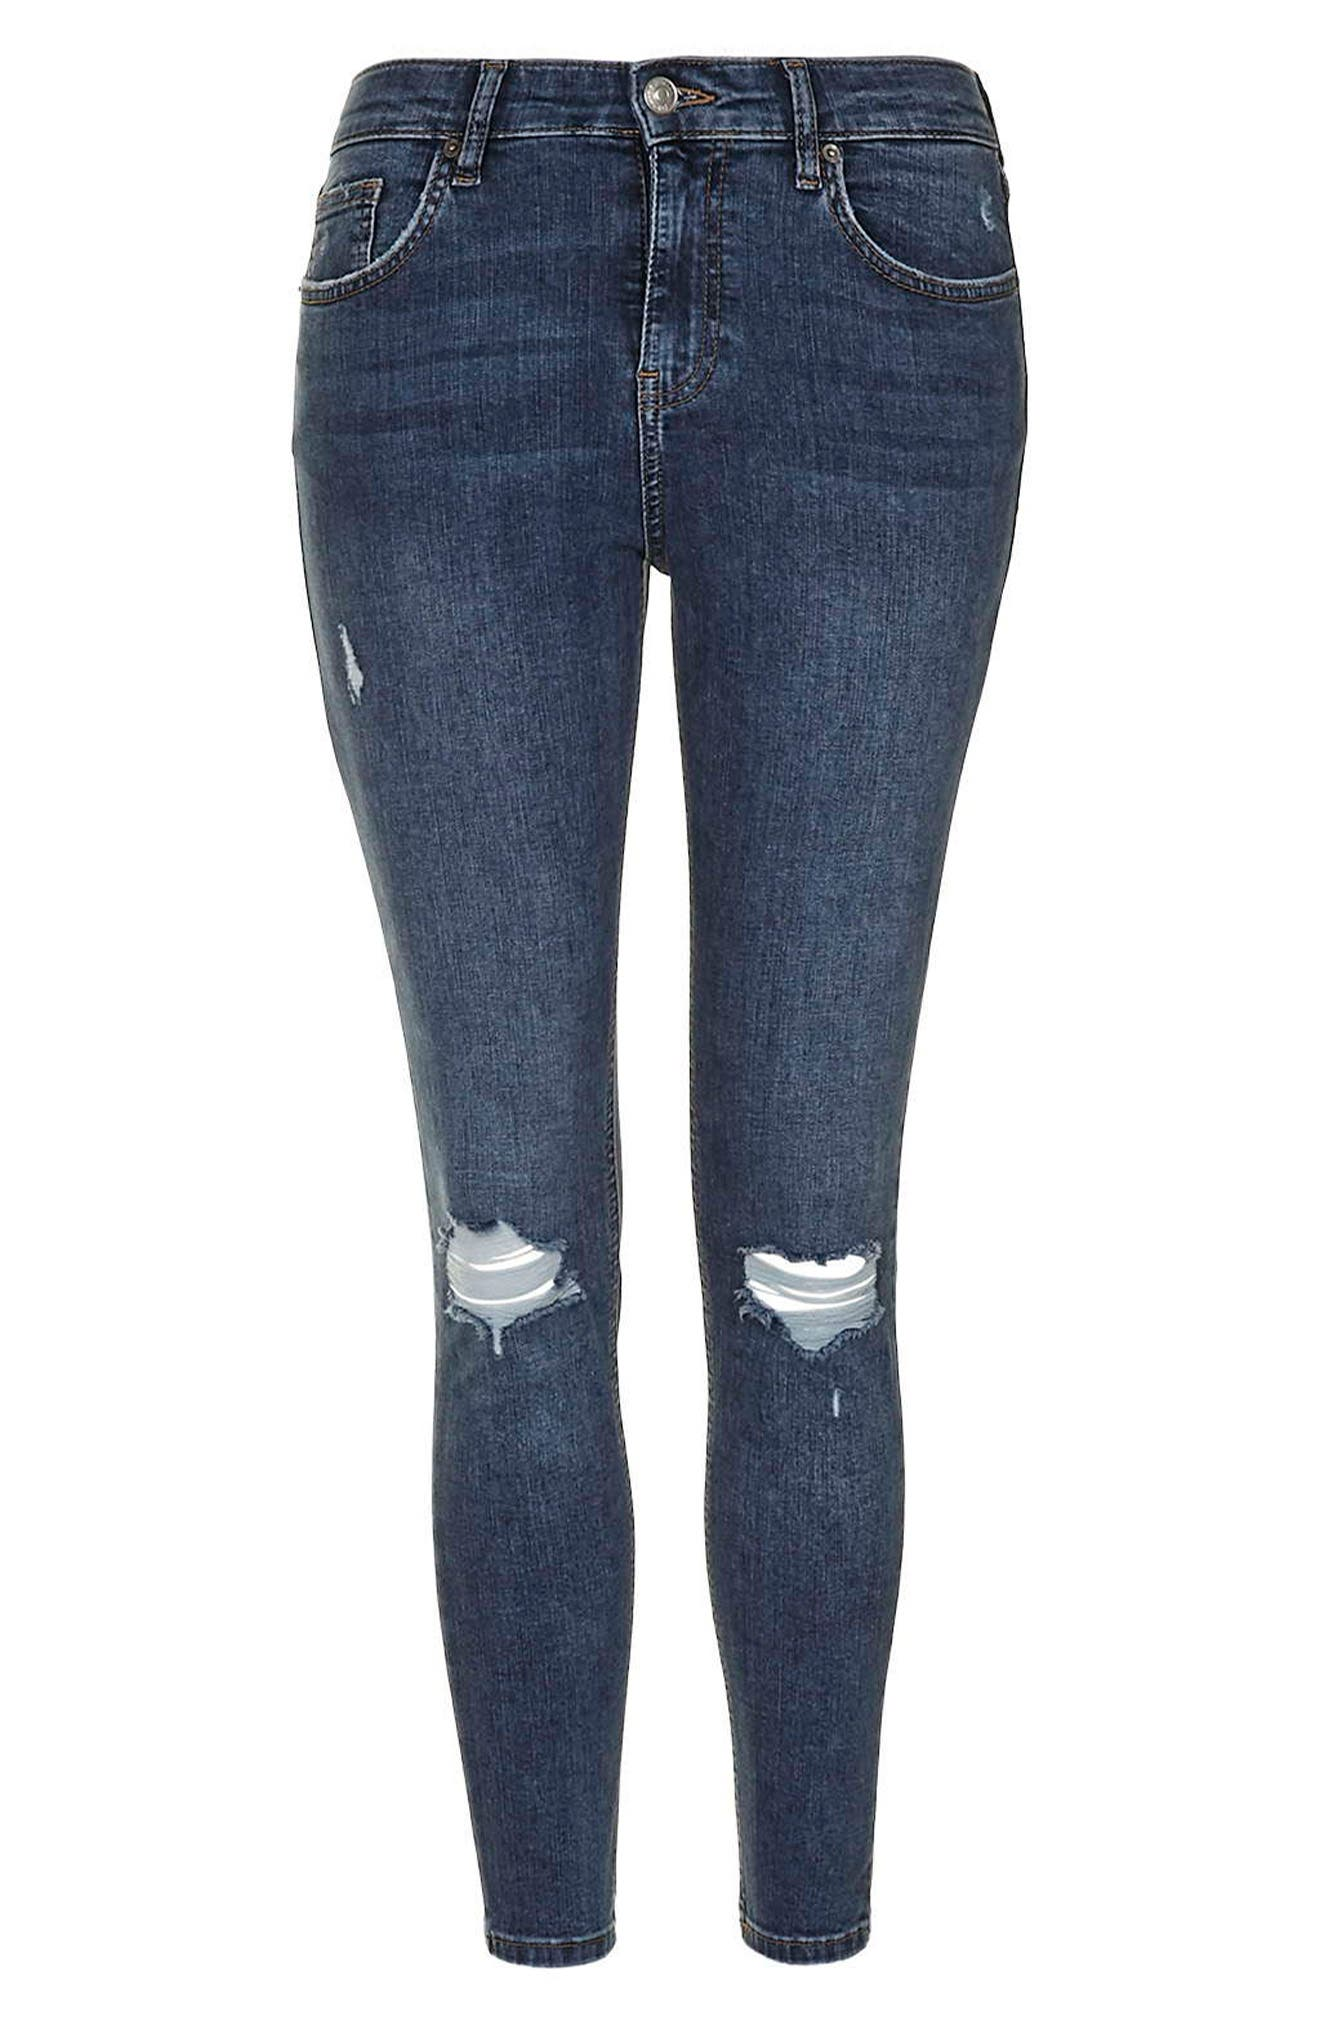 TOPSHOP, Moto 'Jamie' Ripped Skinny Ankle Jeans, Alternate thumbnail 6, color, MID DENIM